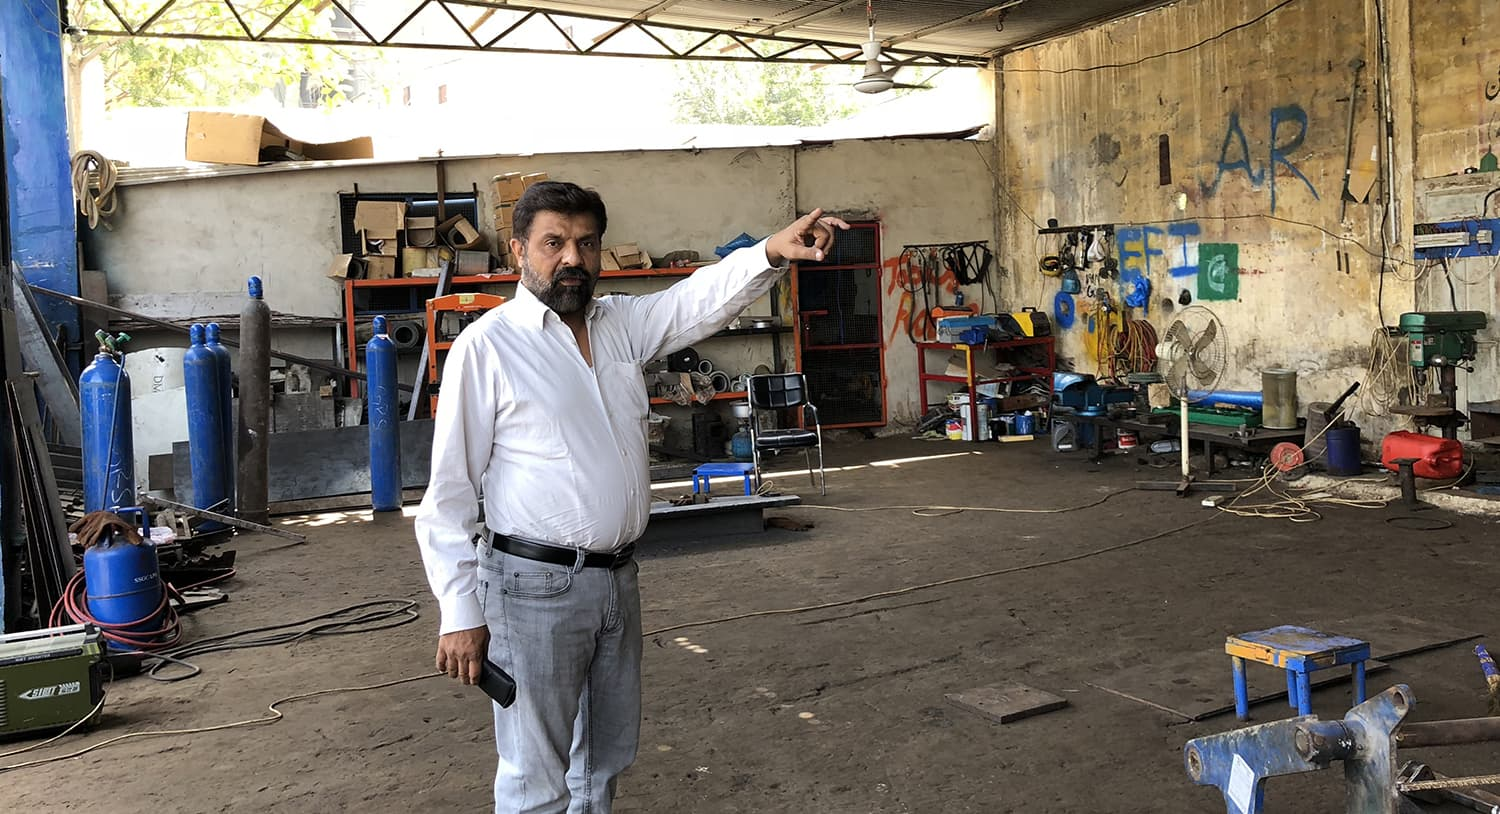 The Chinese company has set up their own workshop where their vehicles are repaired says Maqsood Soomro, assisant director SSWMB responsible for keeping District South clean. — Photo by author